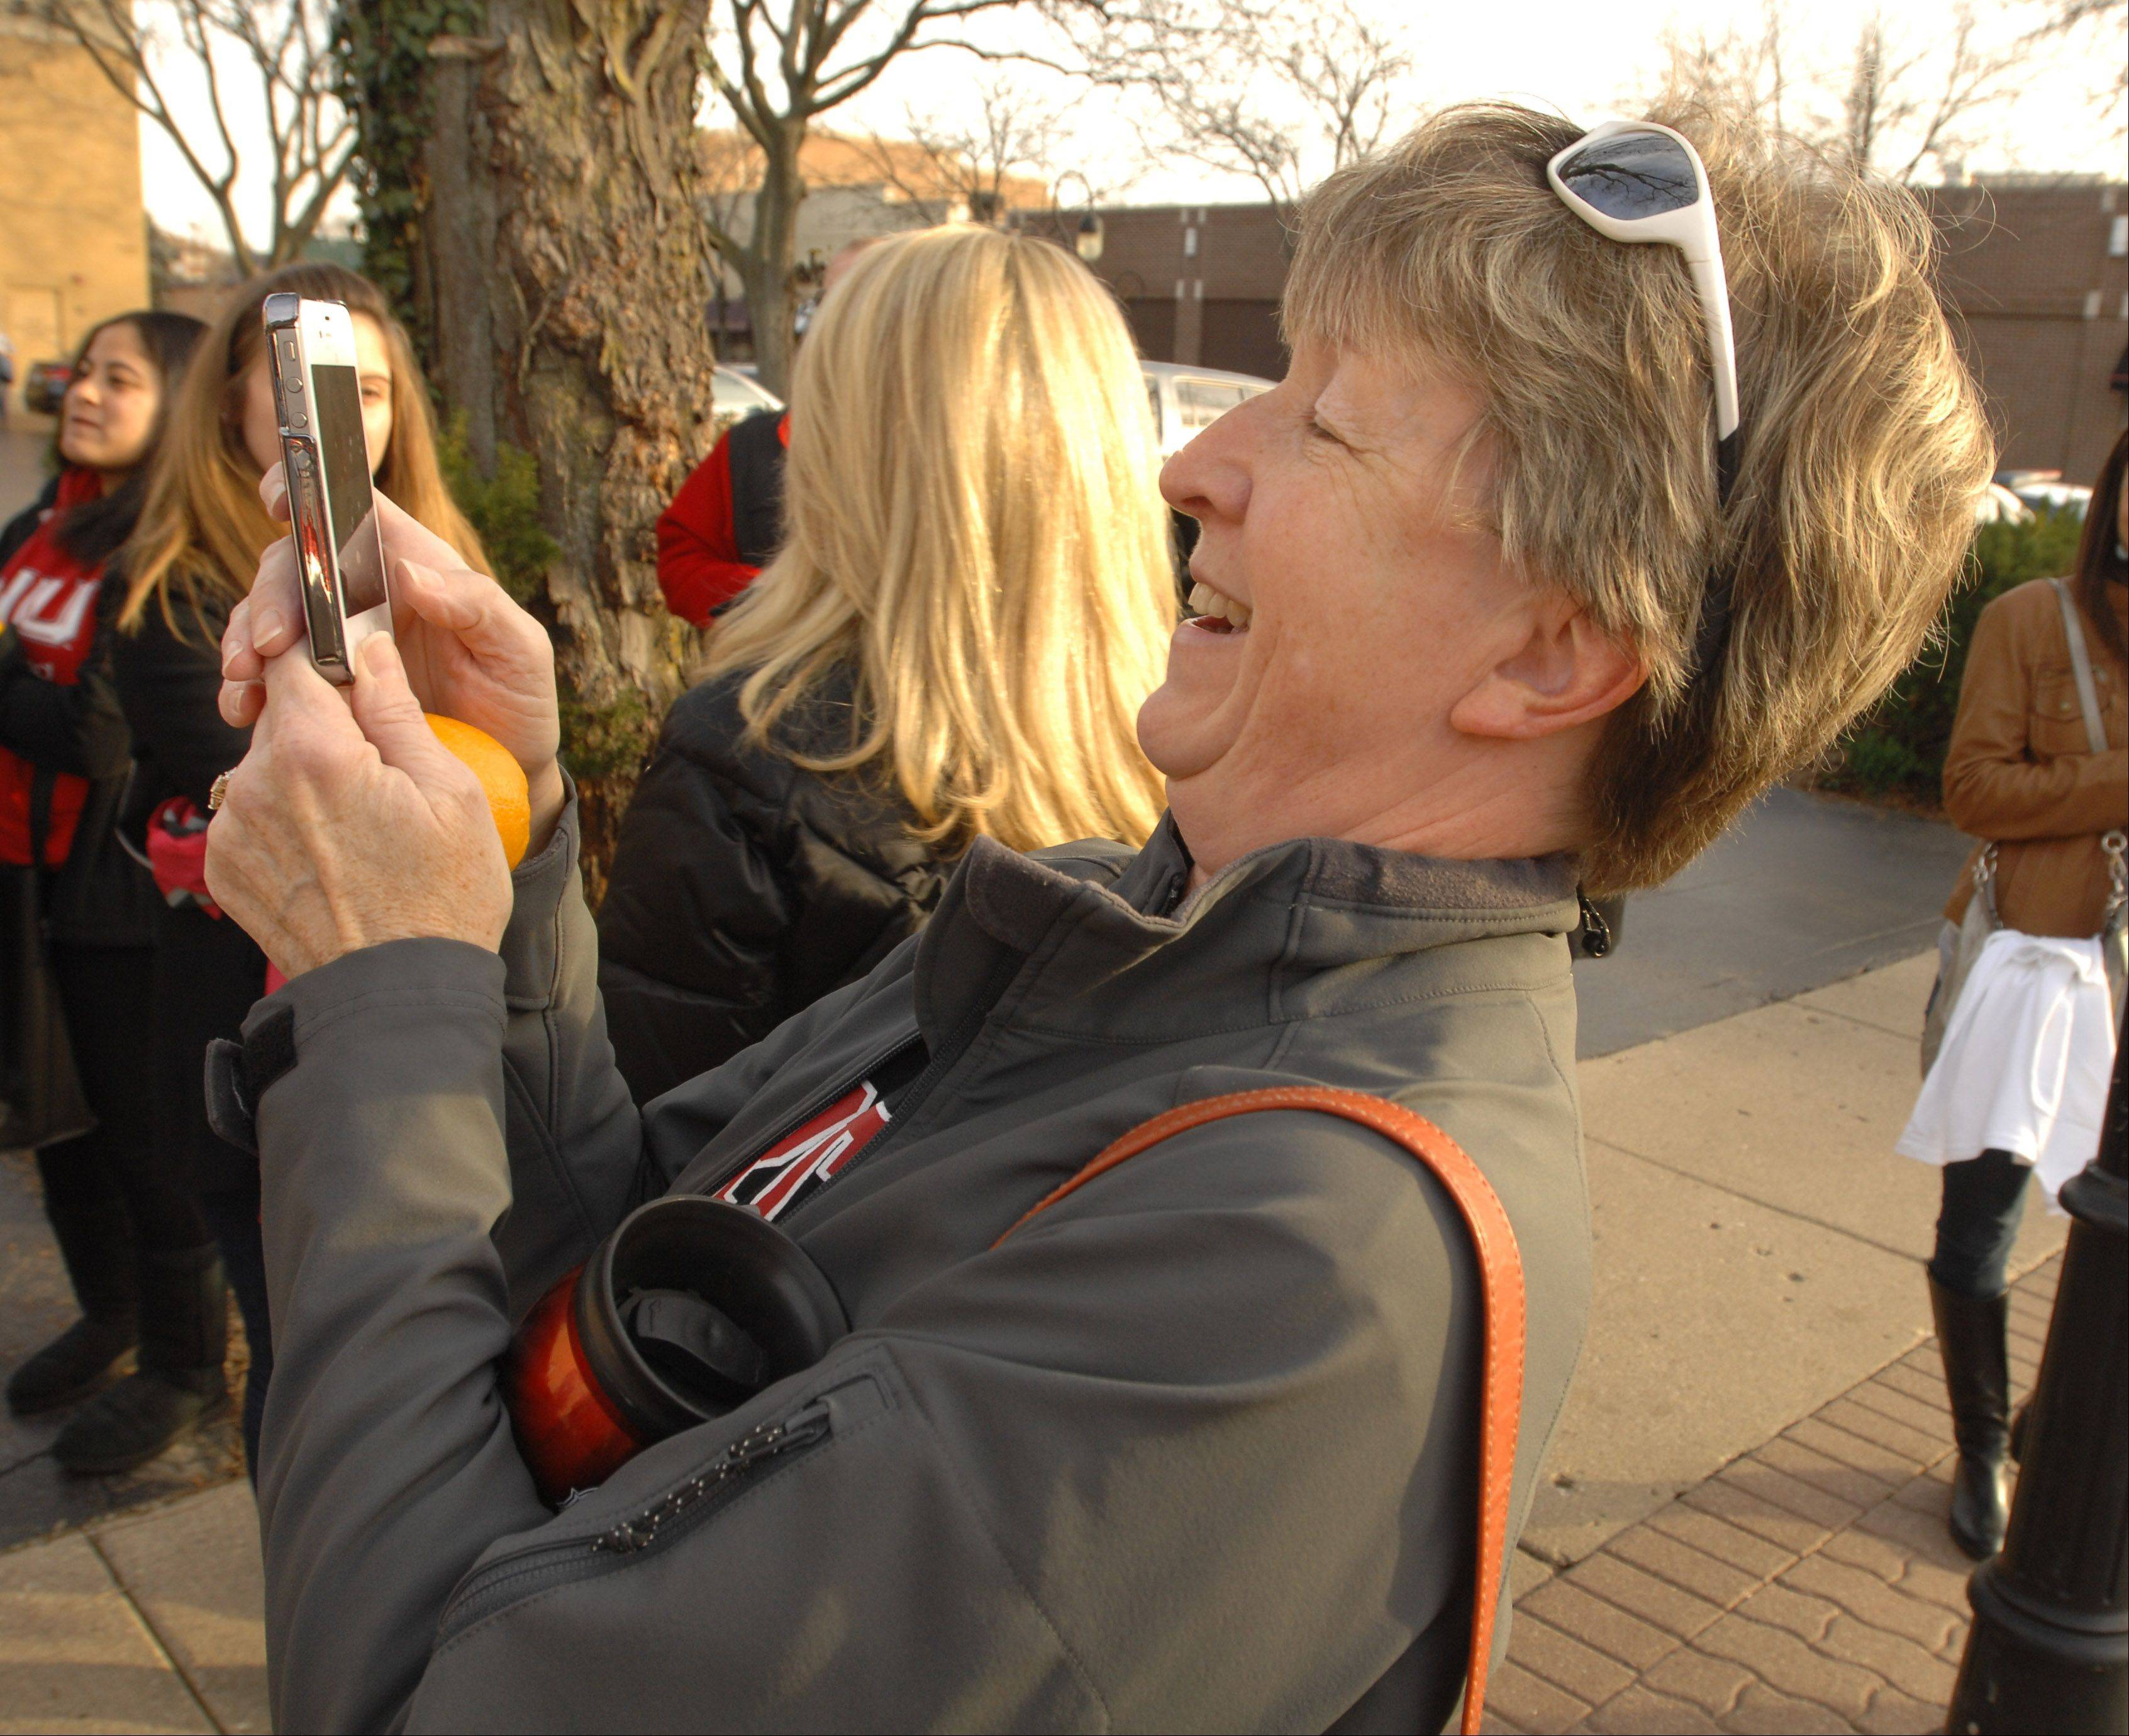 Sue Ekkebus of Naperville stops Friday to take a photo of a group of Northern Illinois University students, along with mascot Victor E. Huskie. The students were promoting the football team's Jan. 1 trip to the Orange Bowl and handing out oranges to fans.